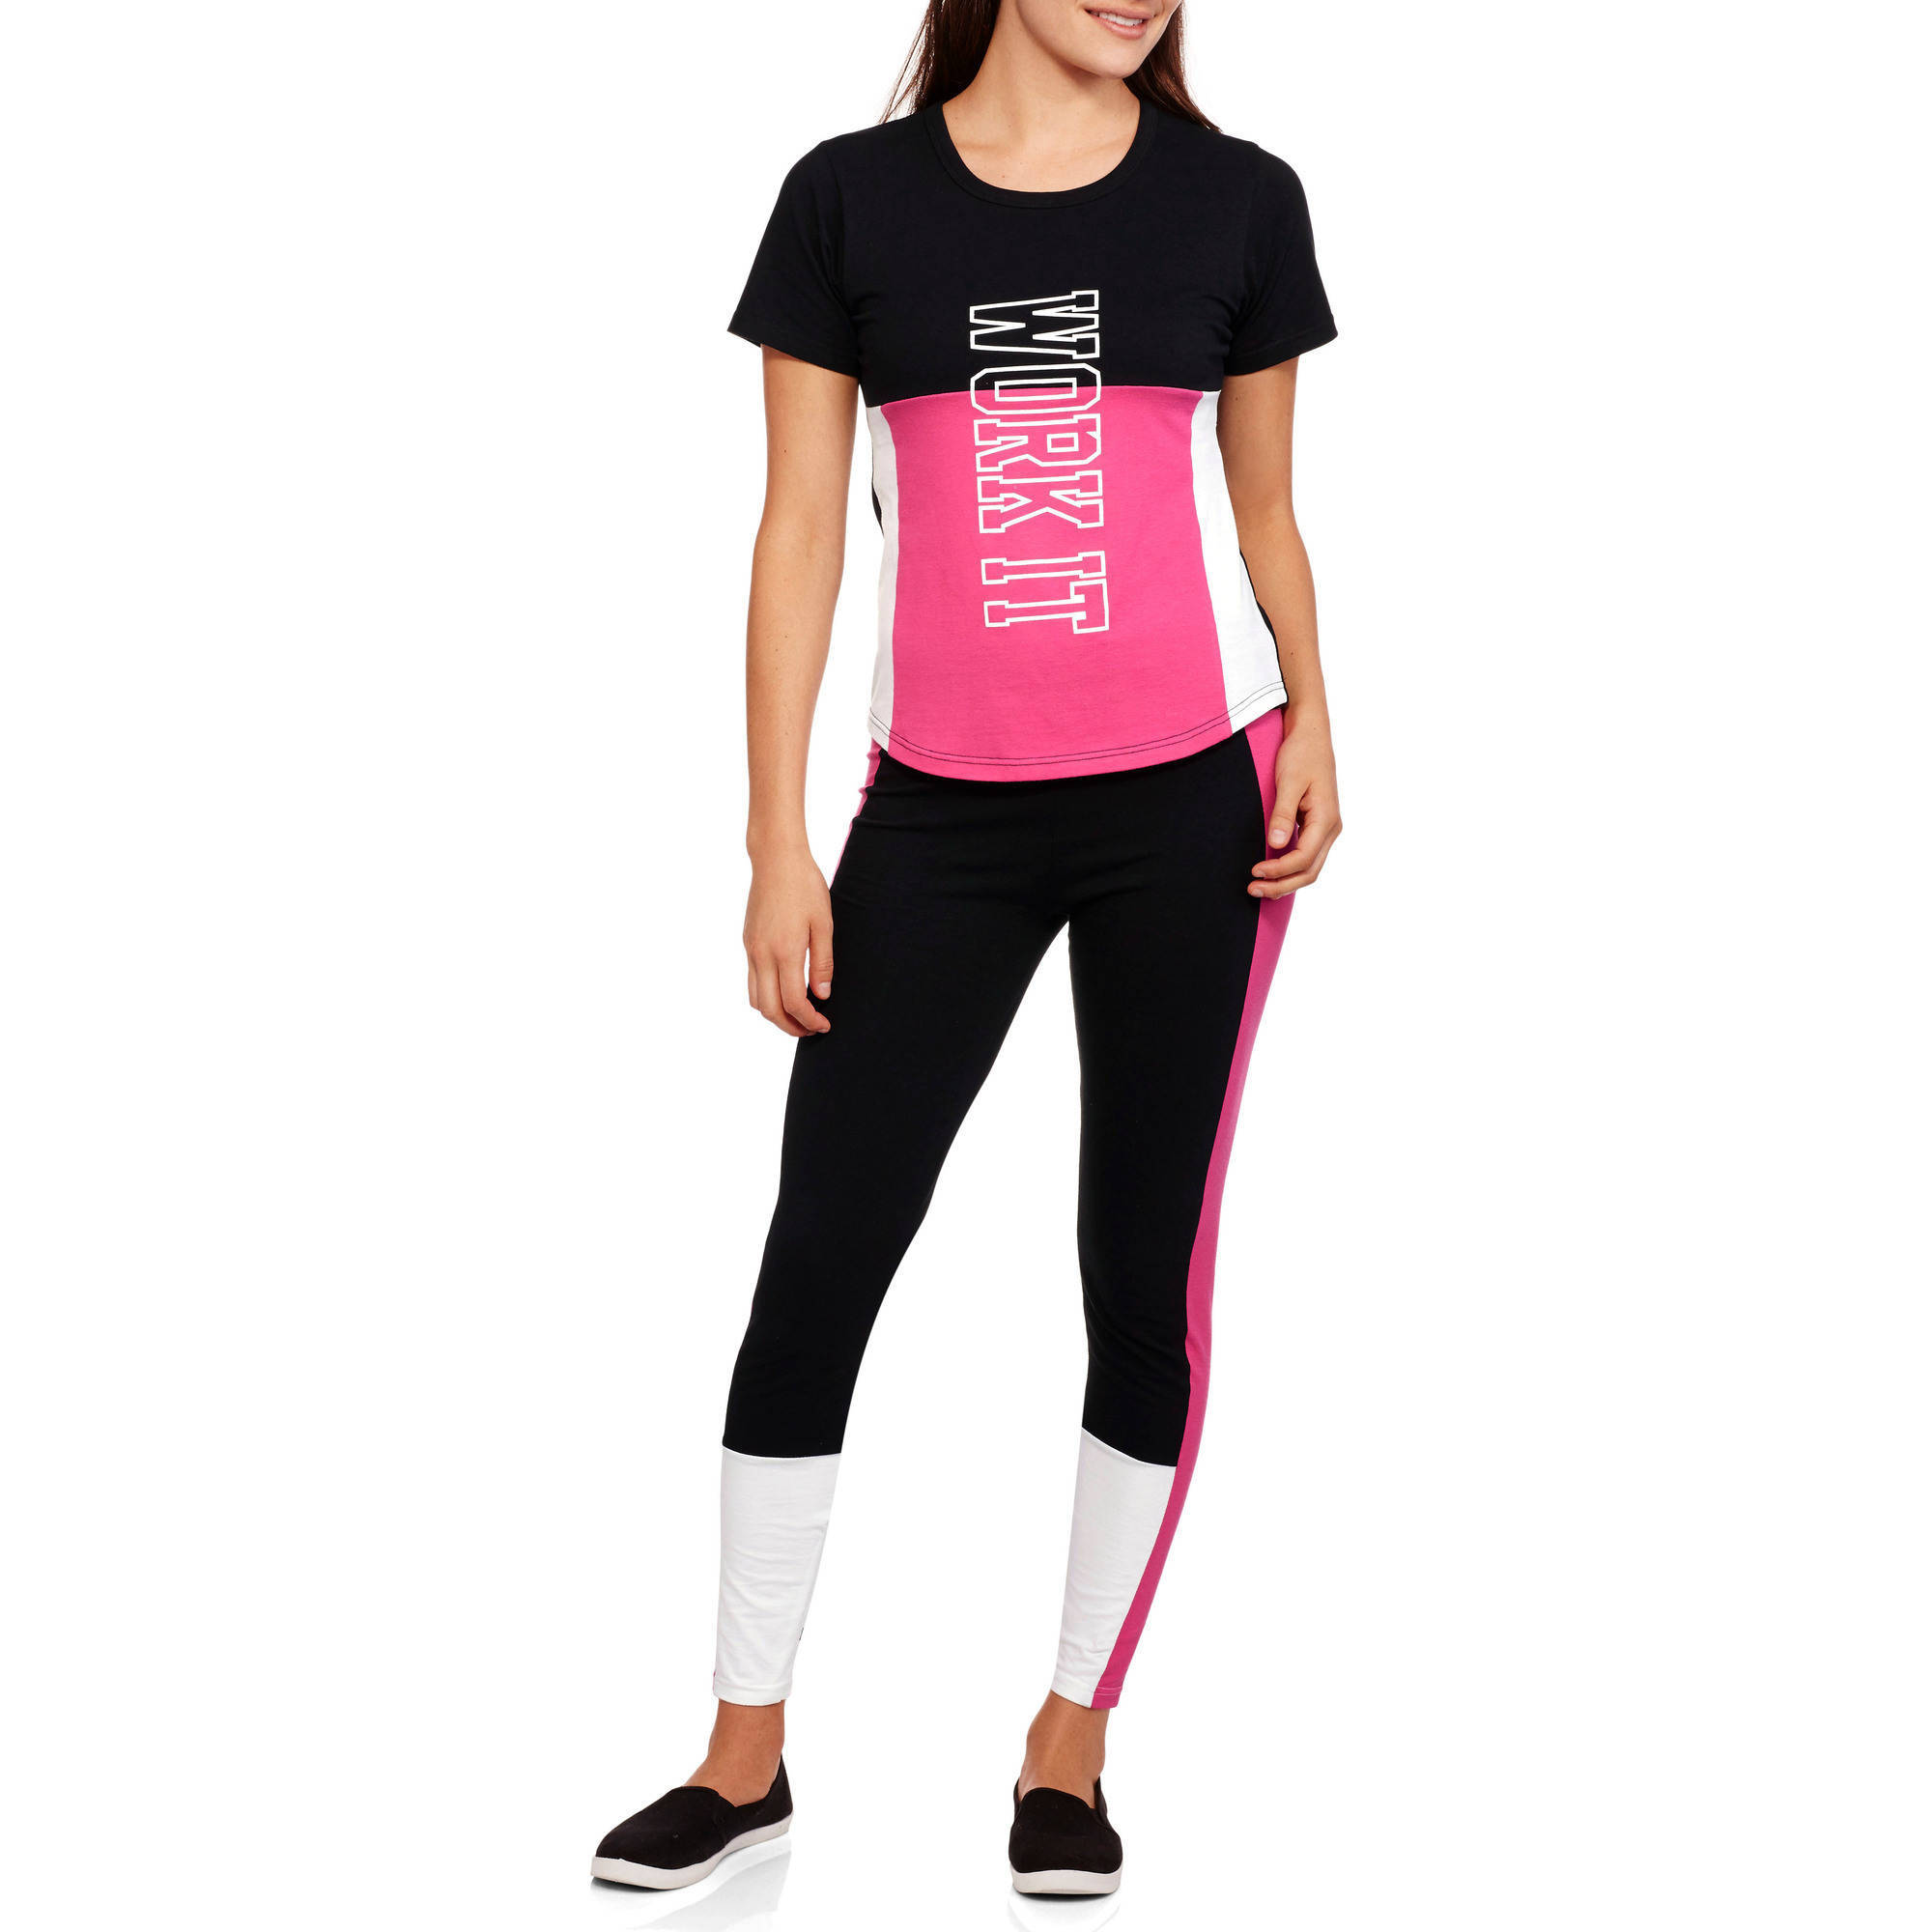 """Women's Fitspiration """"Work It"""" Active T-Shirt and Colorblock Leggings Set"""